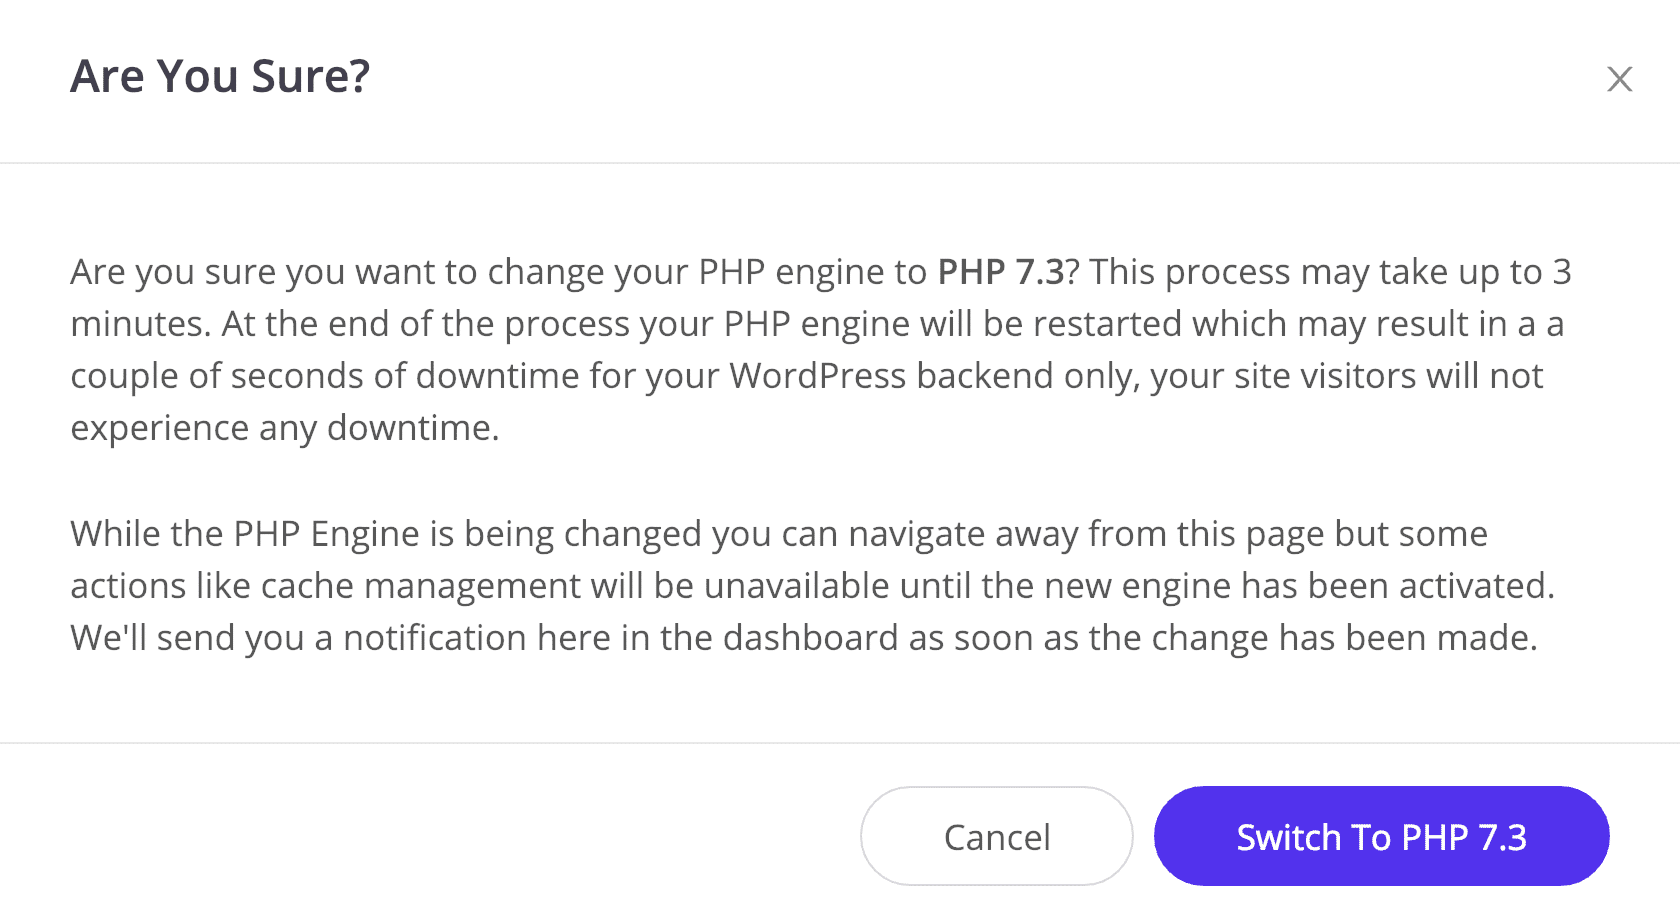 Switch to PHP 7.3